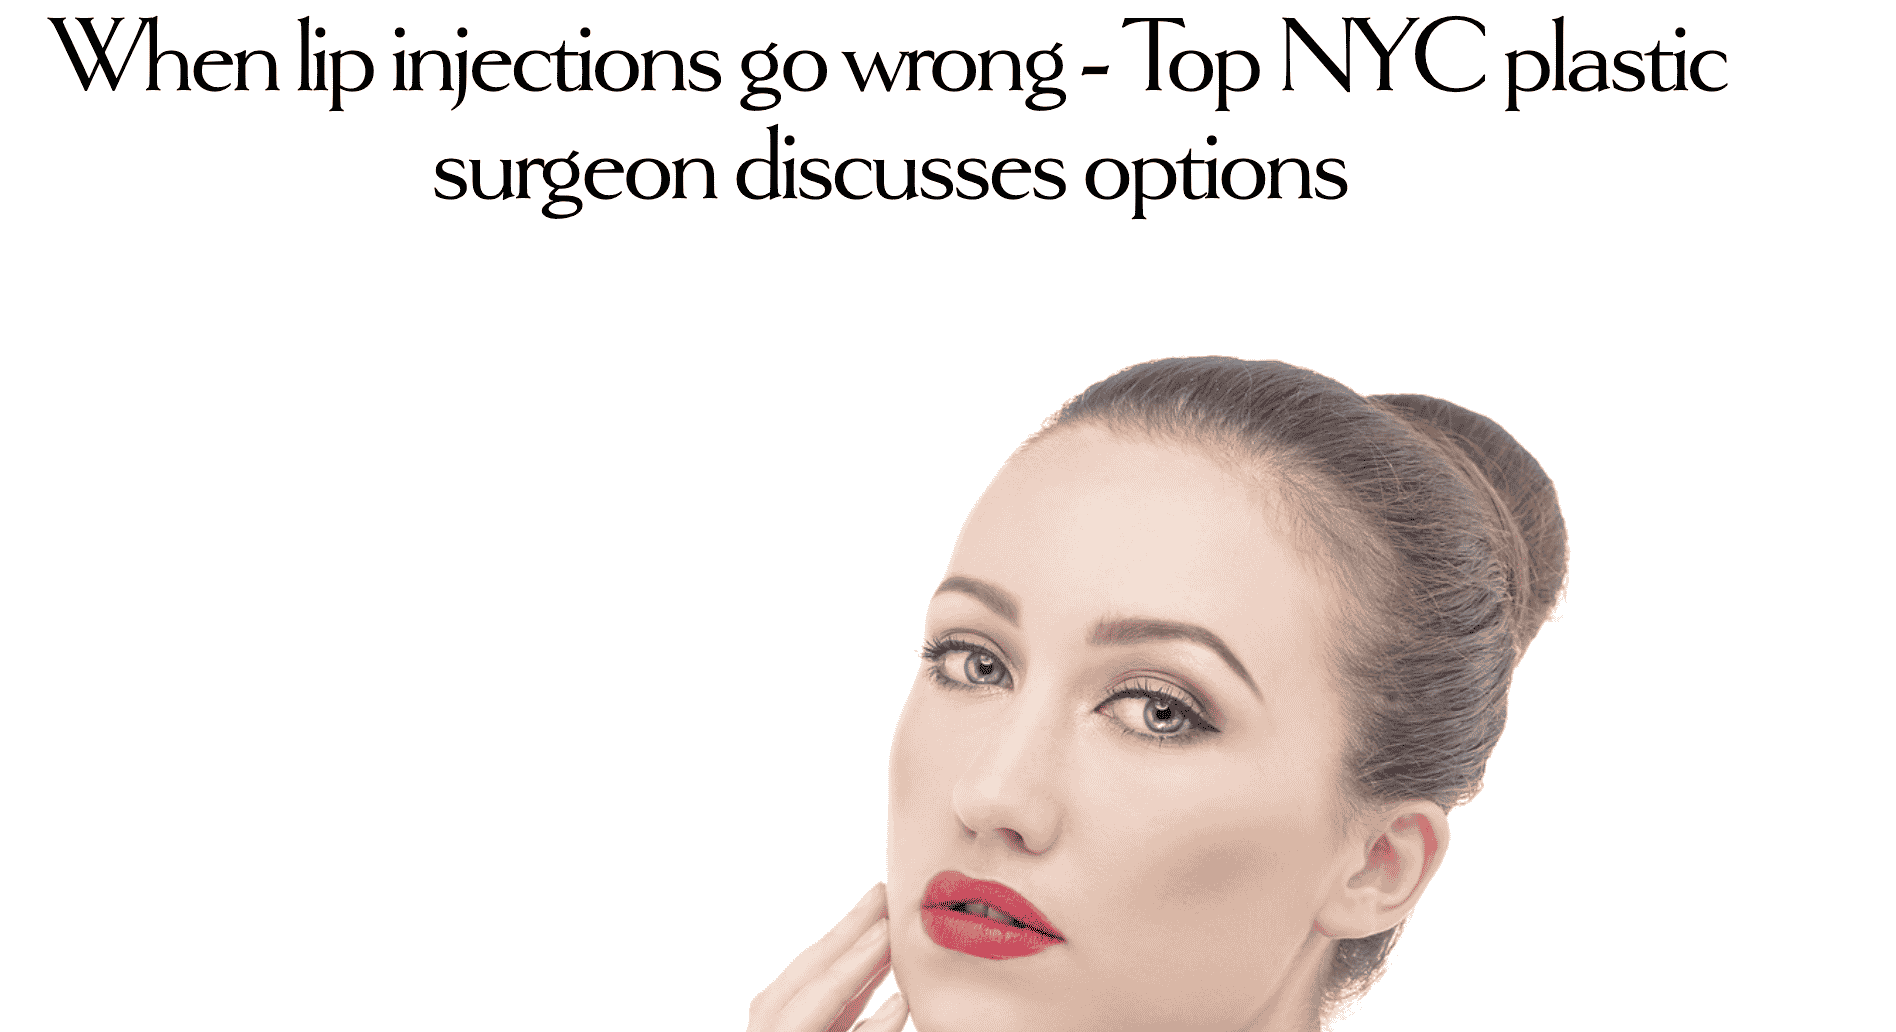 When lip injections go wrong - Top NYC plastic surgeon discusses options